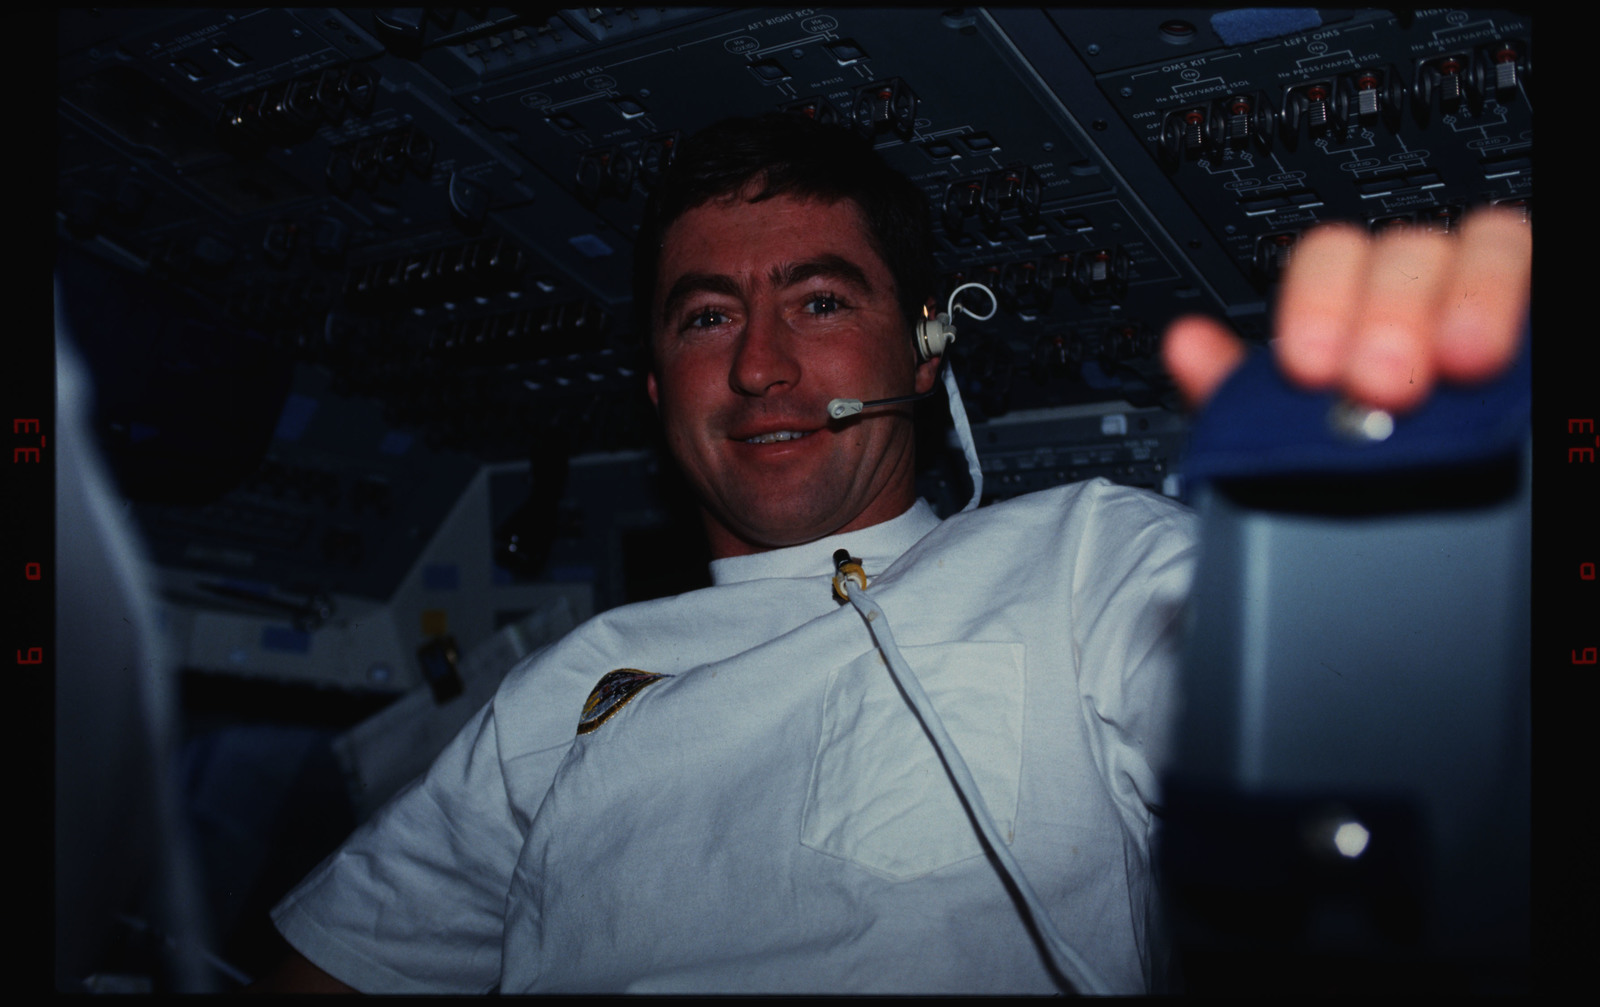 STS044-16-021 - STS-044 - STS-44 Pilot Henricks poses for a photo on OV-104's aft flight deck